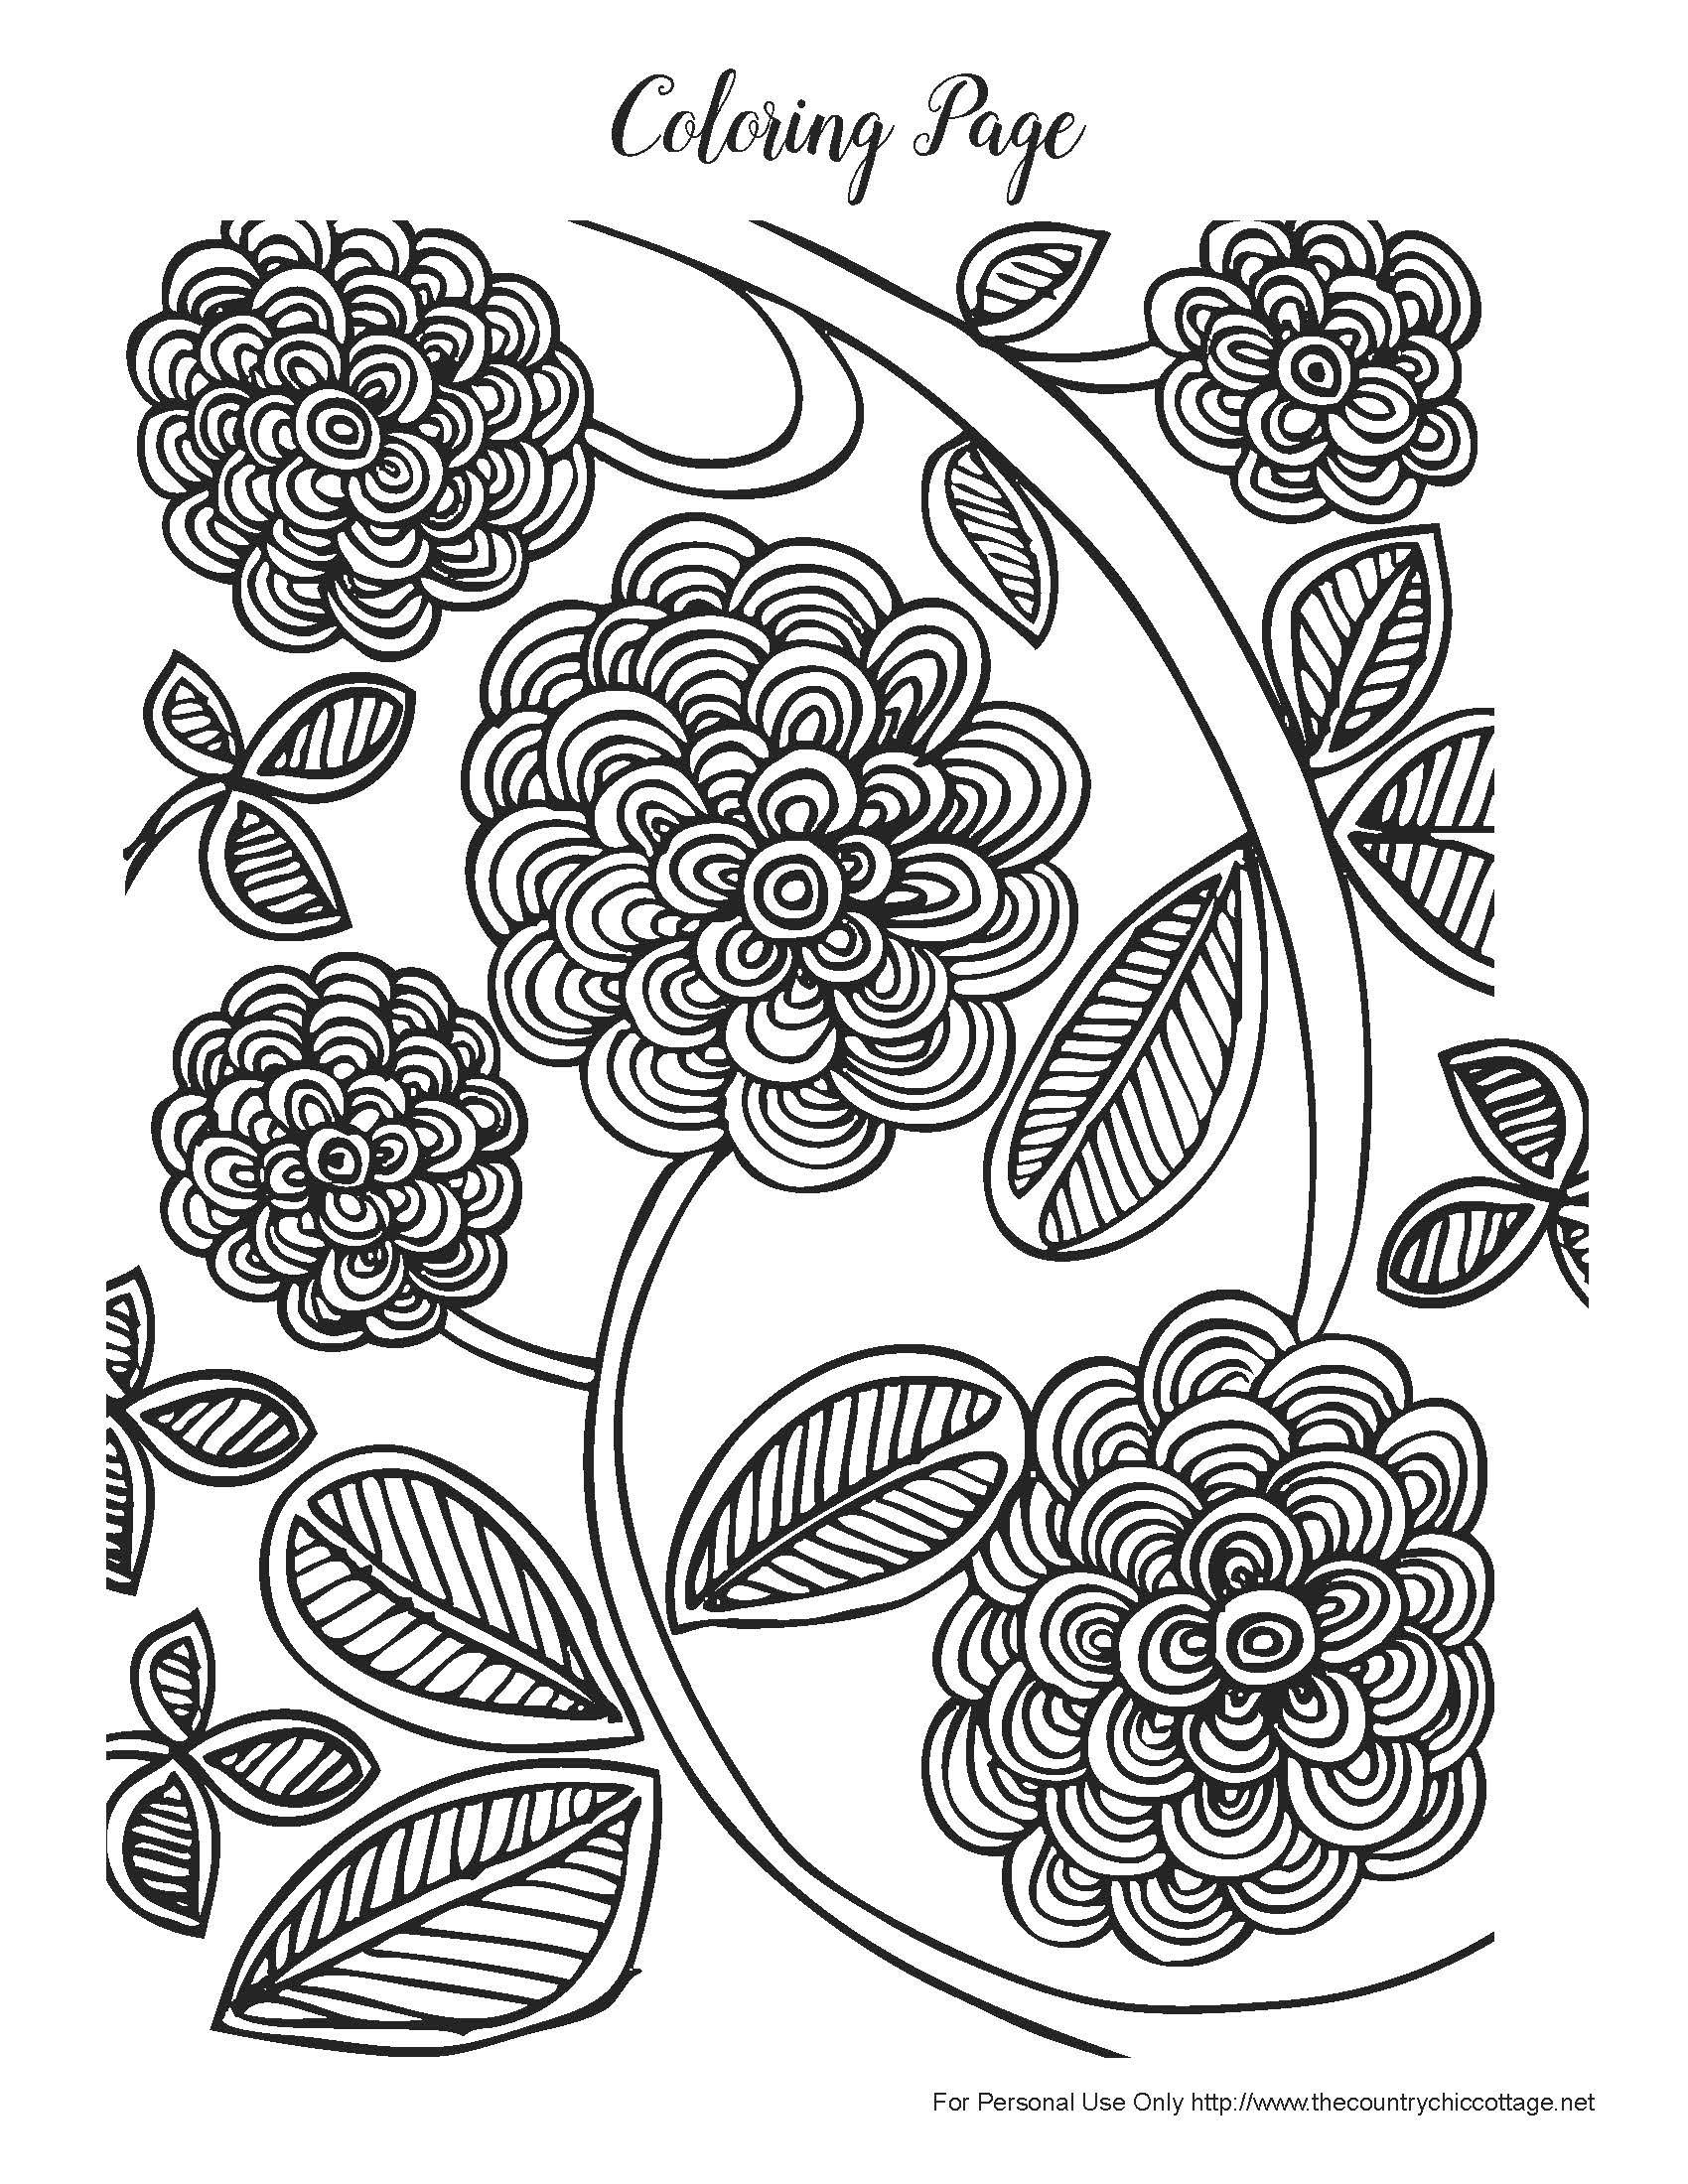 Free Spring Coloring Pages For Adults | Products I Love | Pinterest - Free Printable Coloring Cards For Adults